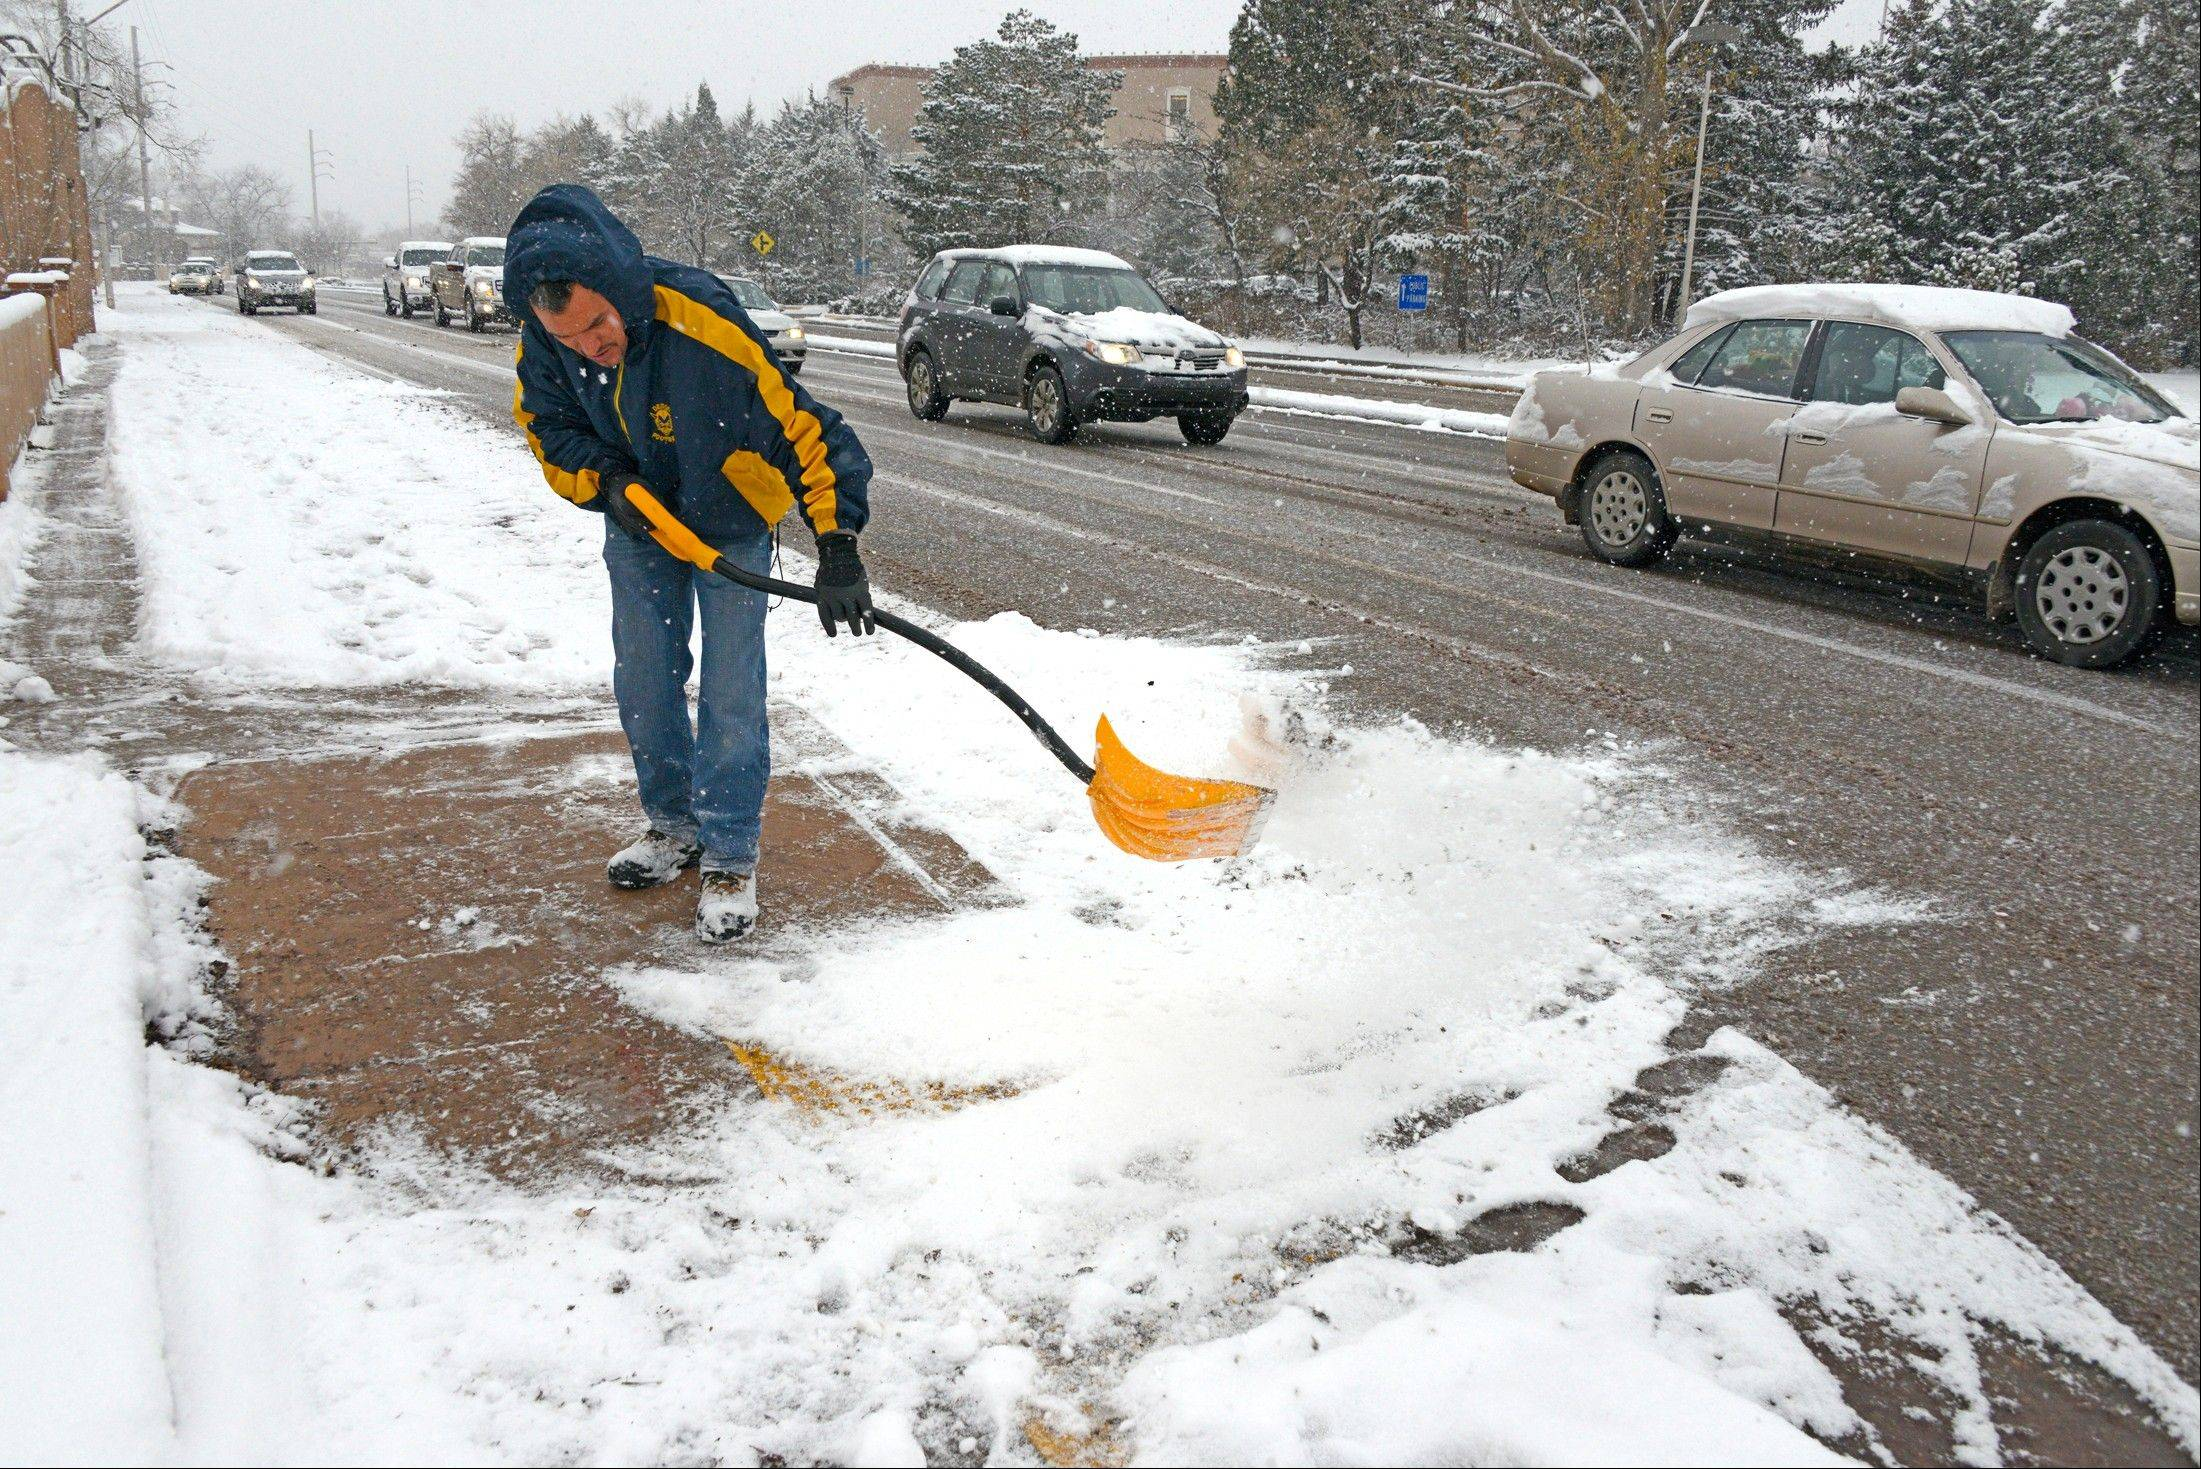 David Palomino clears the sidewalk of snow on Thursday, Dec. 5, 2013 in Santa Fe, N.M.